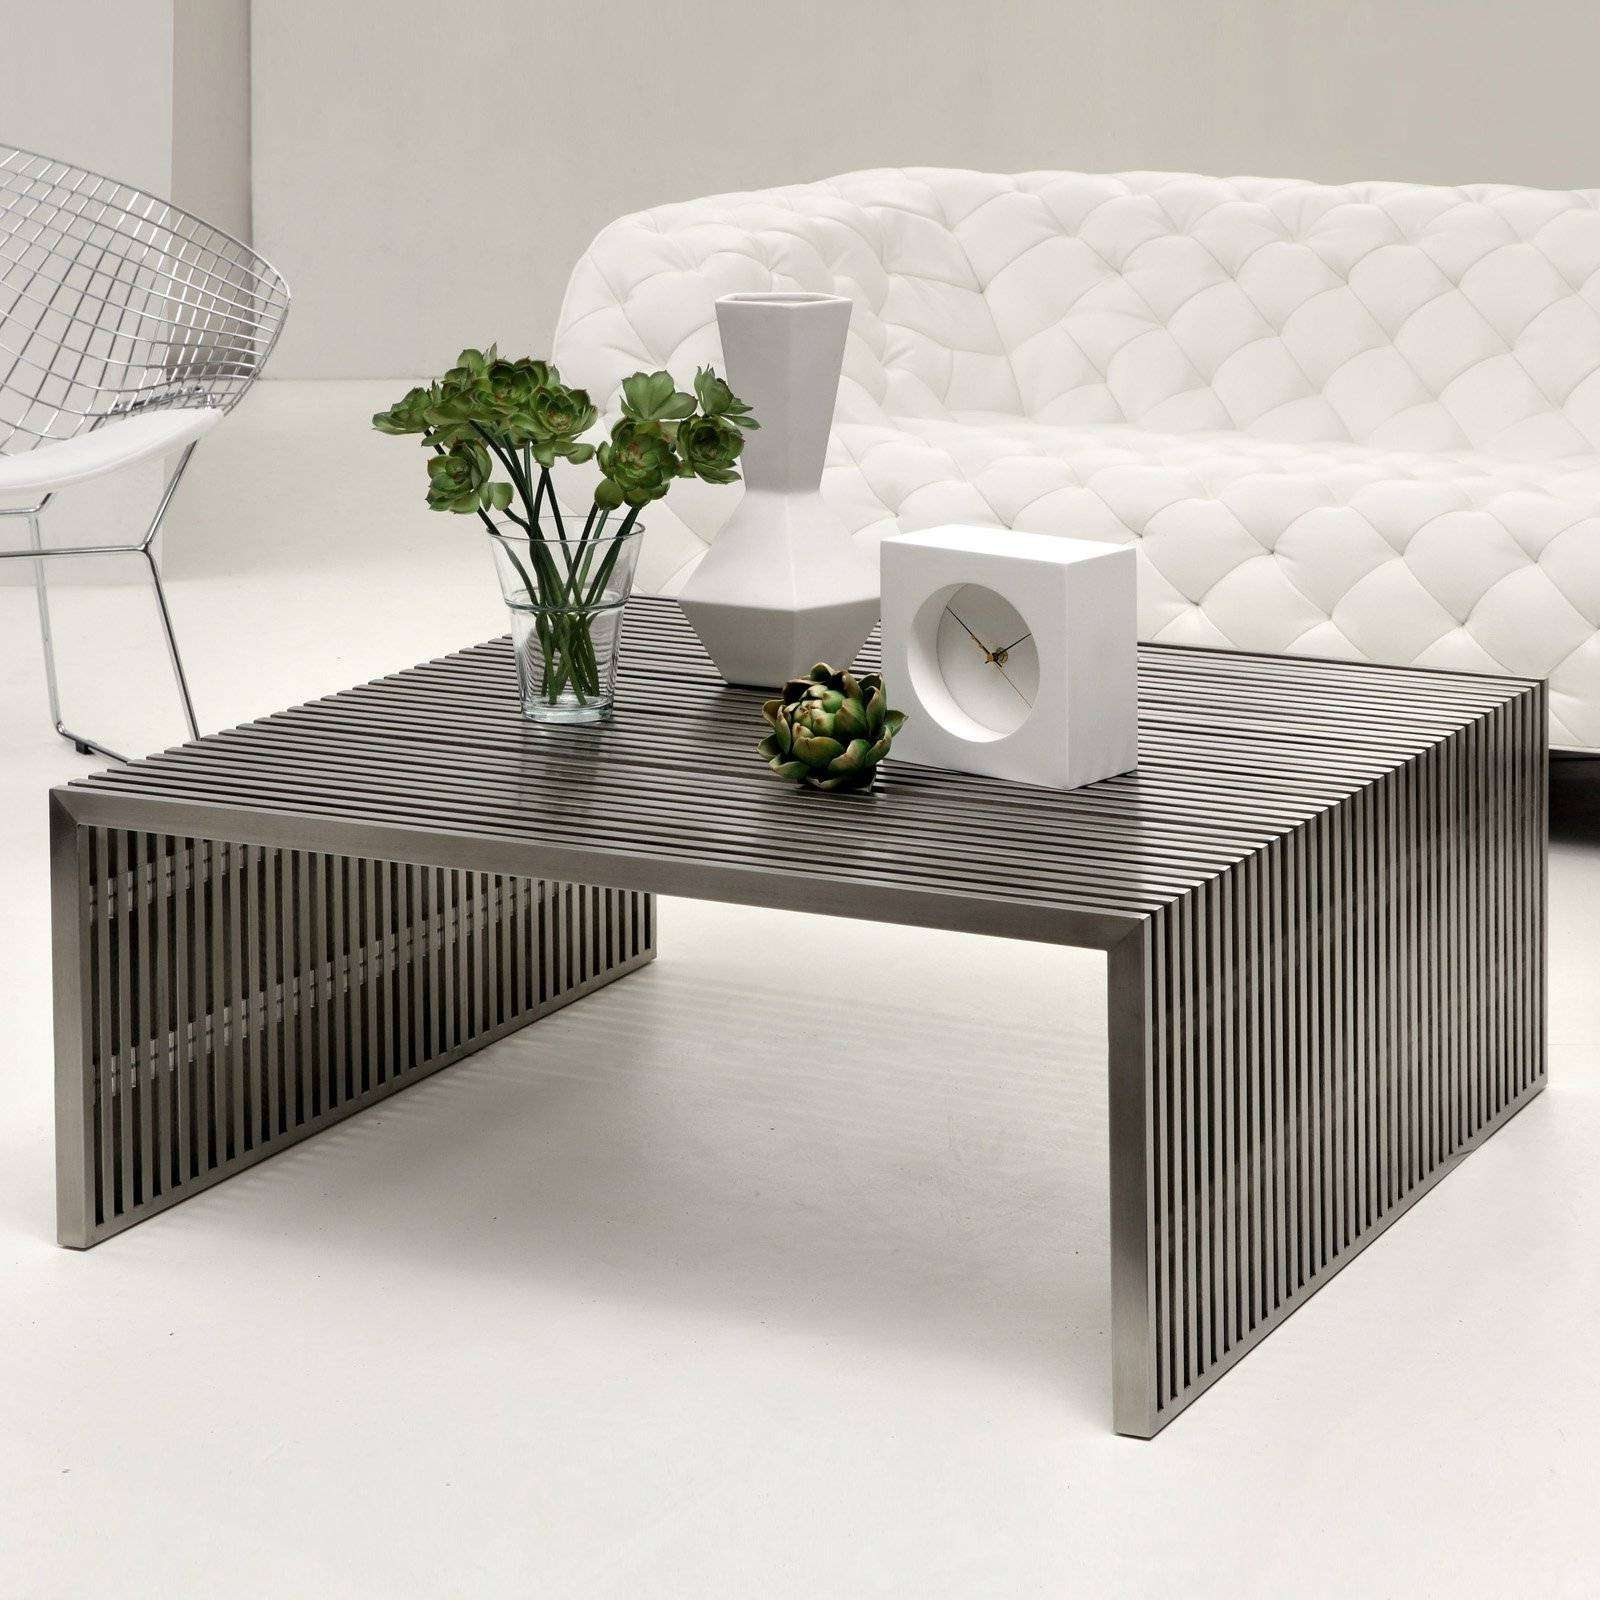 Furniture & Organization: Captivating Square Coffee Tables For Regarding Best And Newest Square Large Coffee Tables (View 7 of 20)